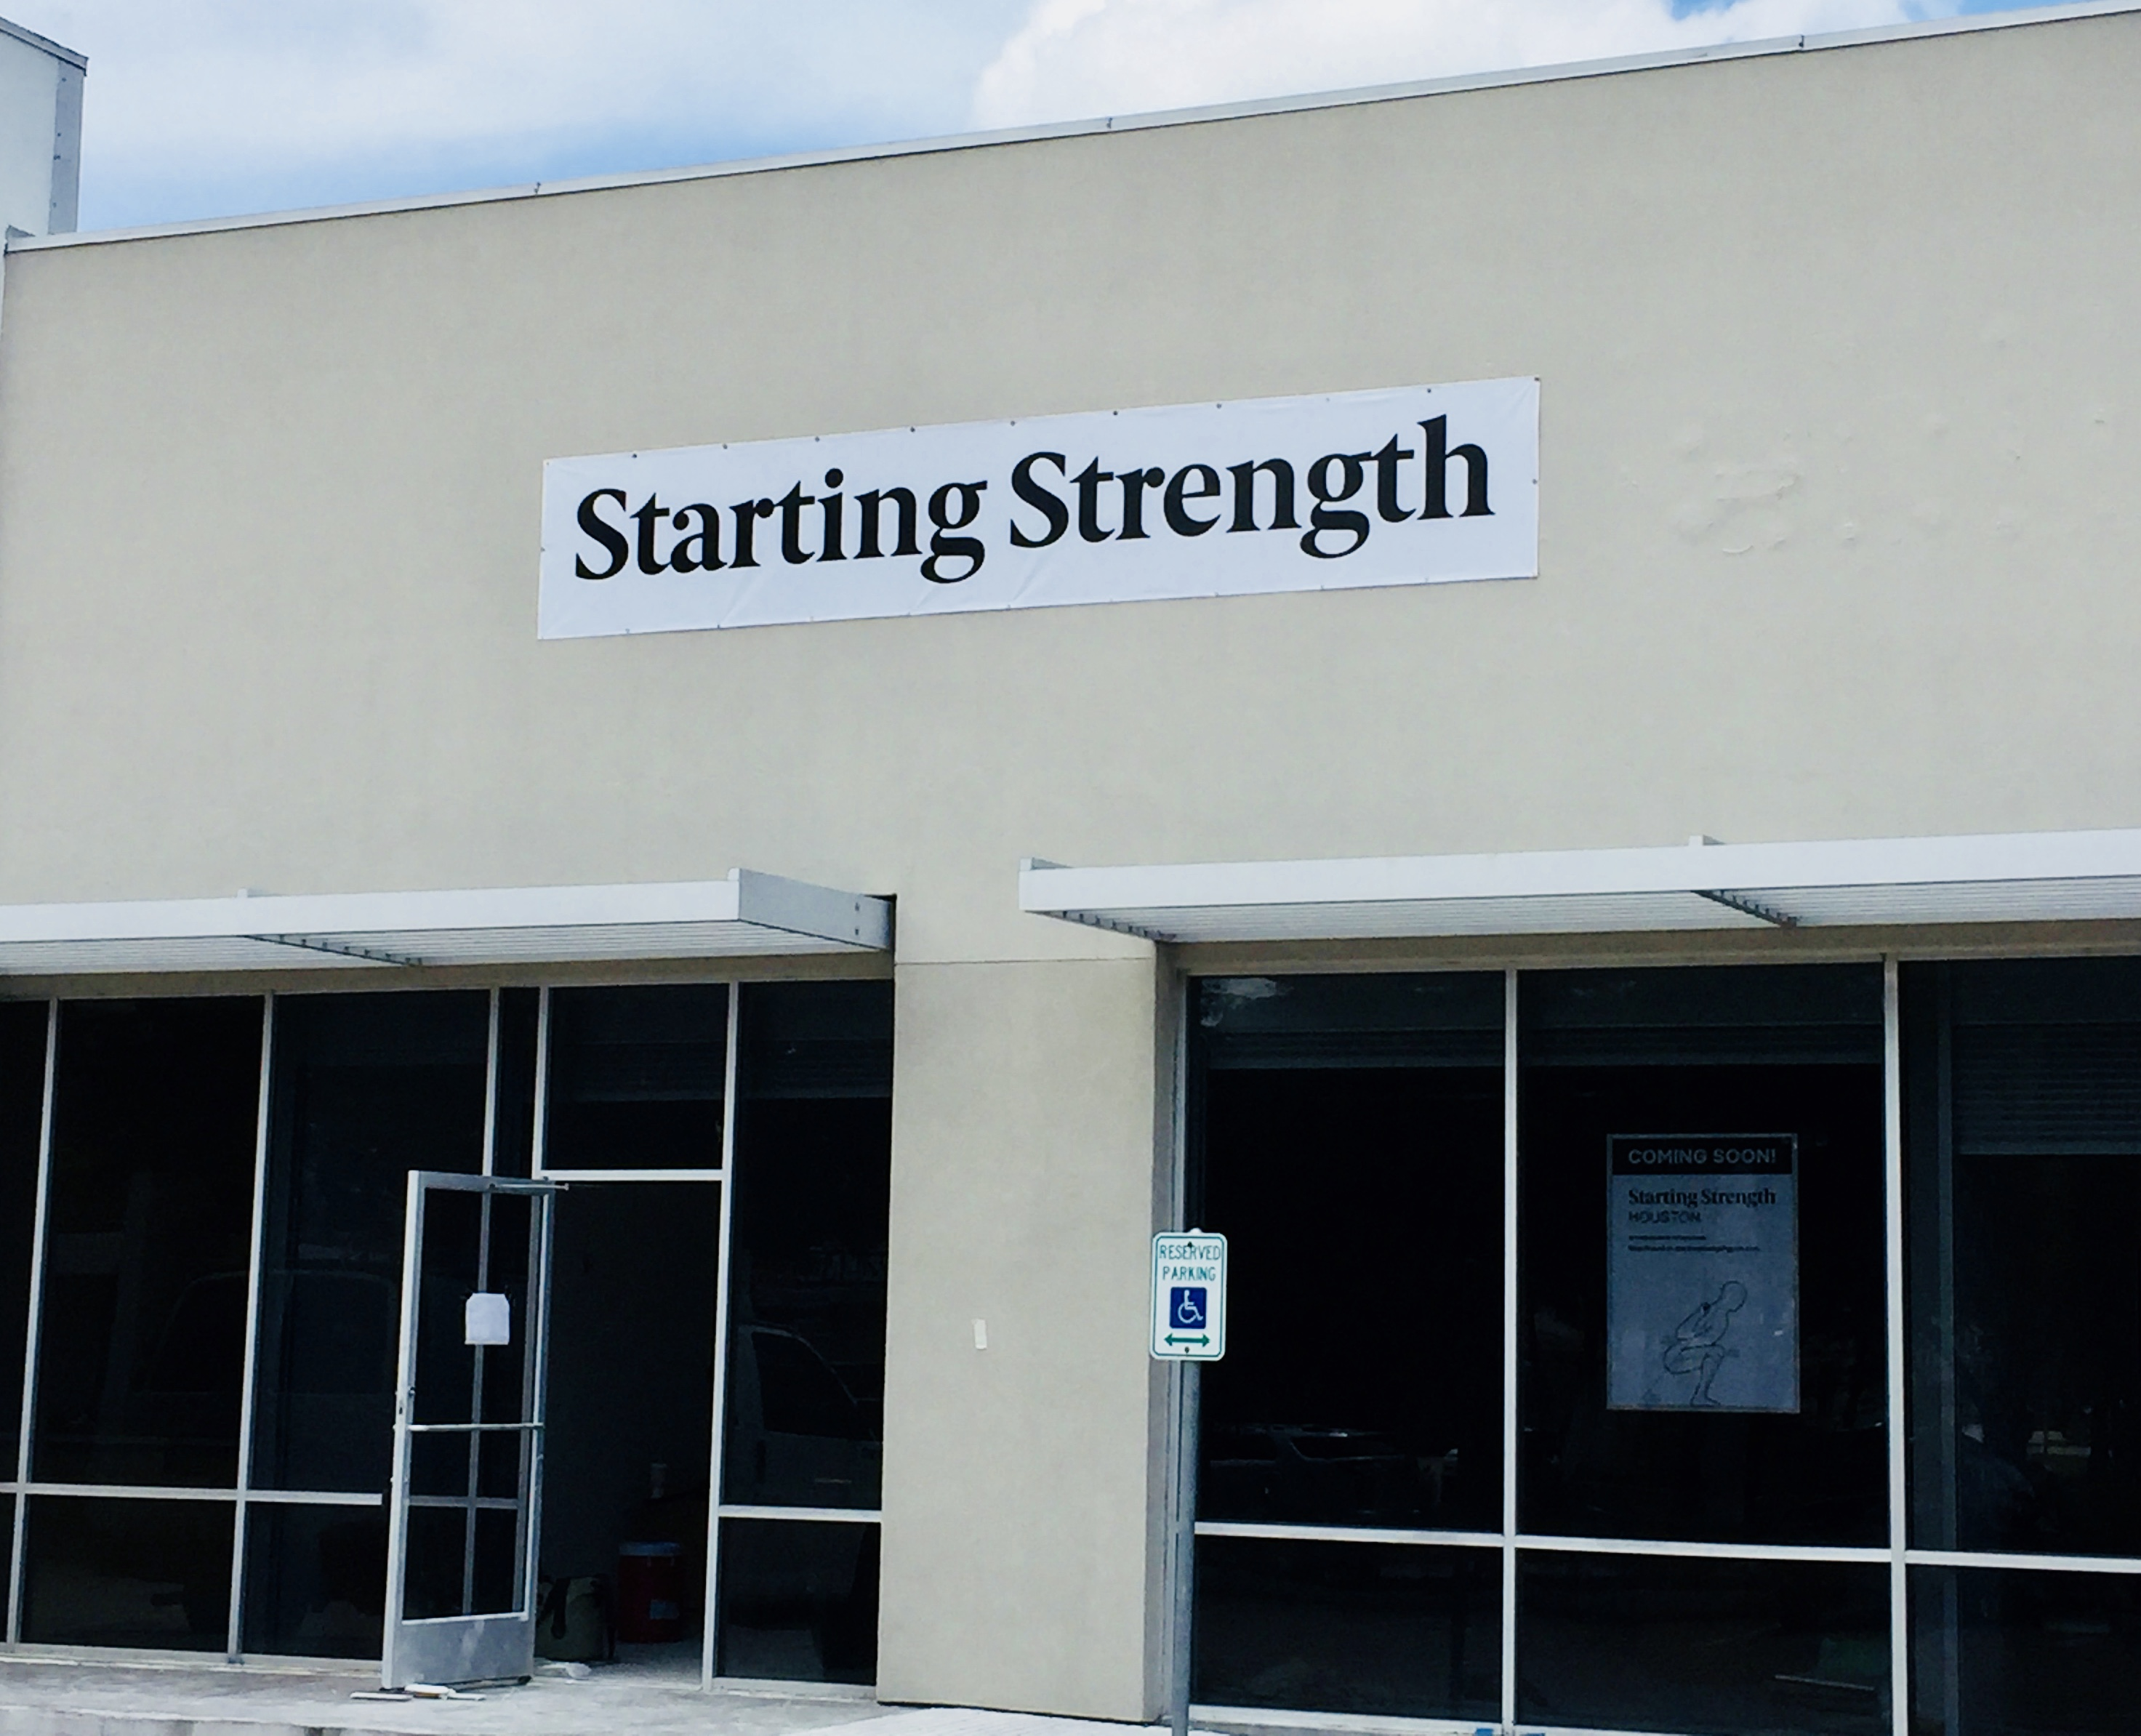 Starting Strength Houston